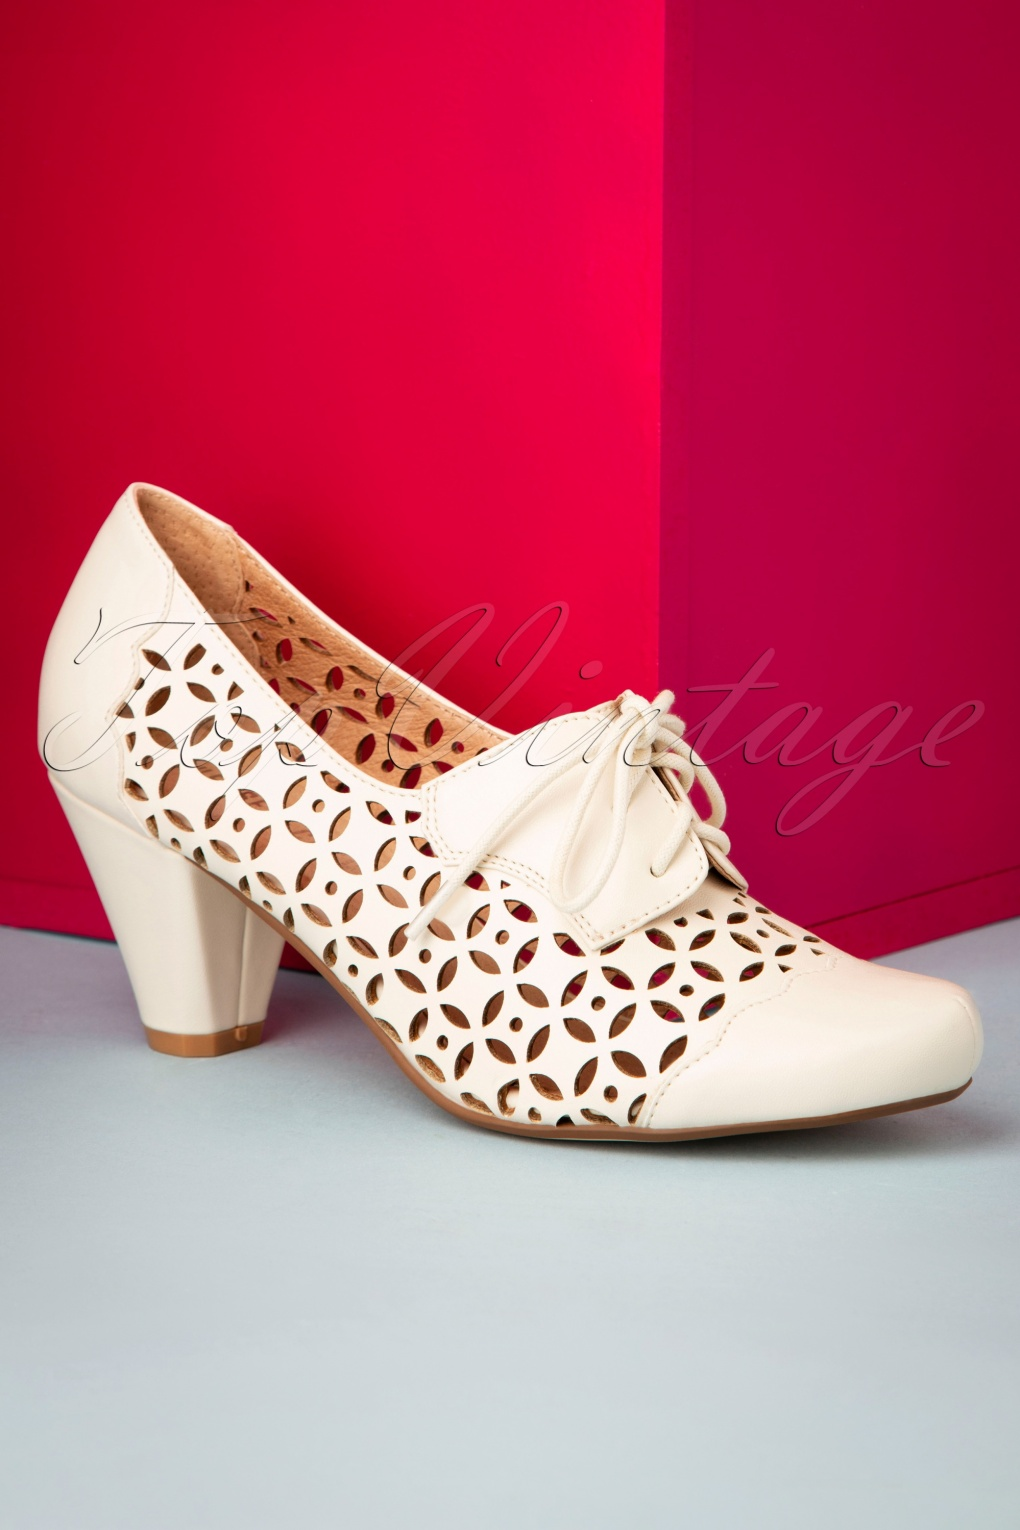 UK 1930s Dresses, Shoes, Clothing in the UK 50s Million Shoe Booties in Bone White £24.95 AT vintagedancer.com